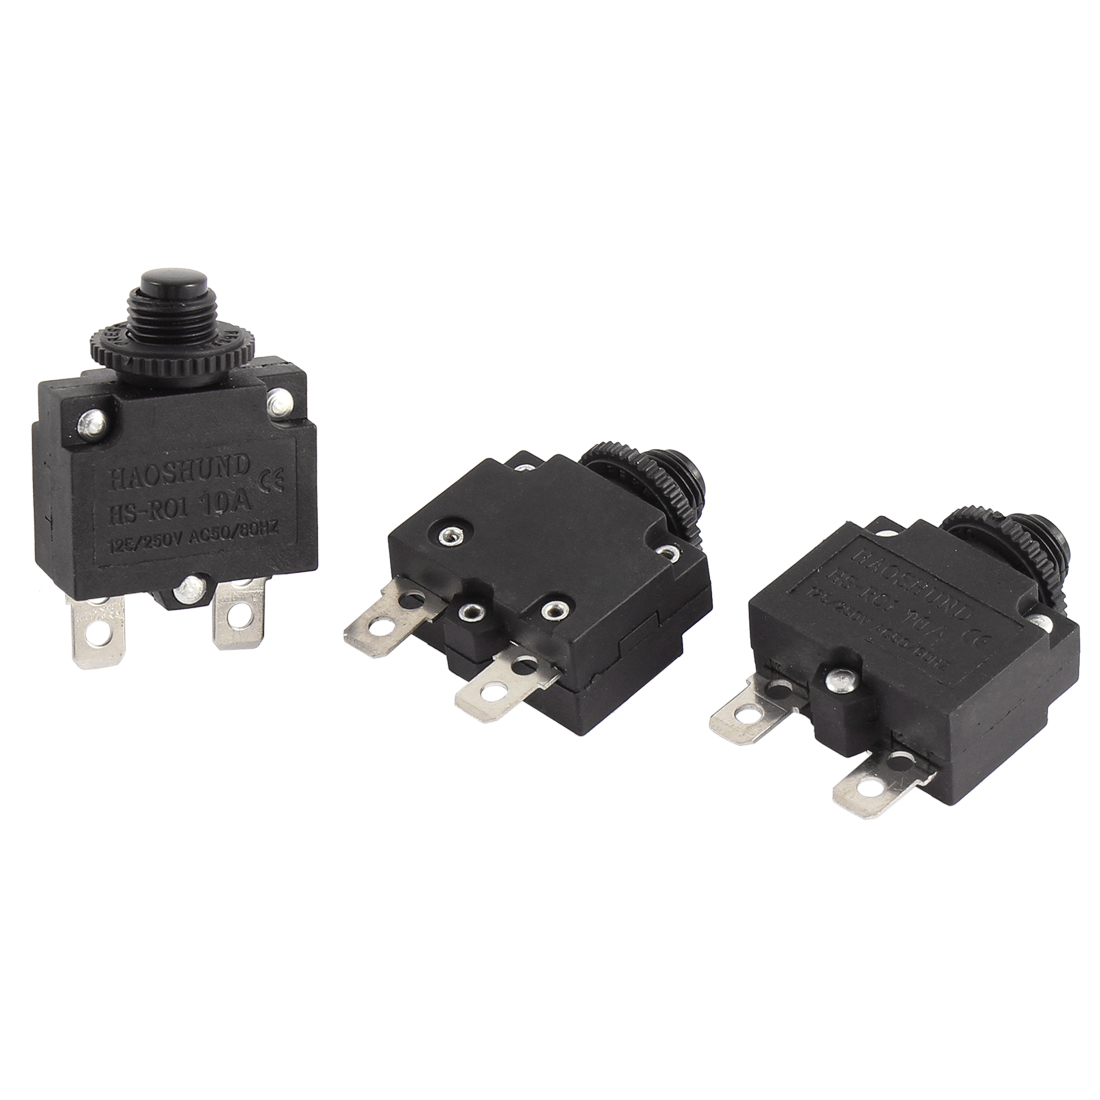 3 Pcs Air Compressor Circuit Breaker Overload Protector Black AC 125V/250V 10A